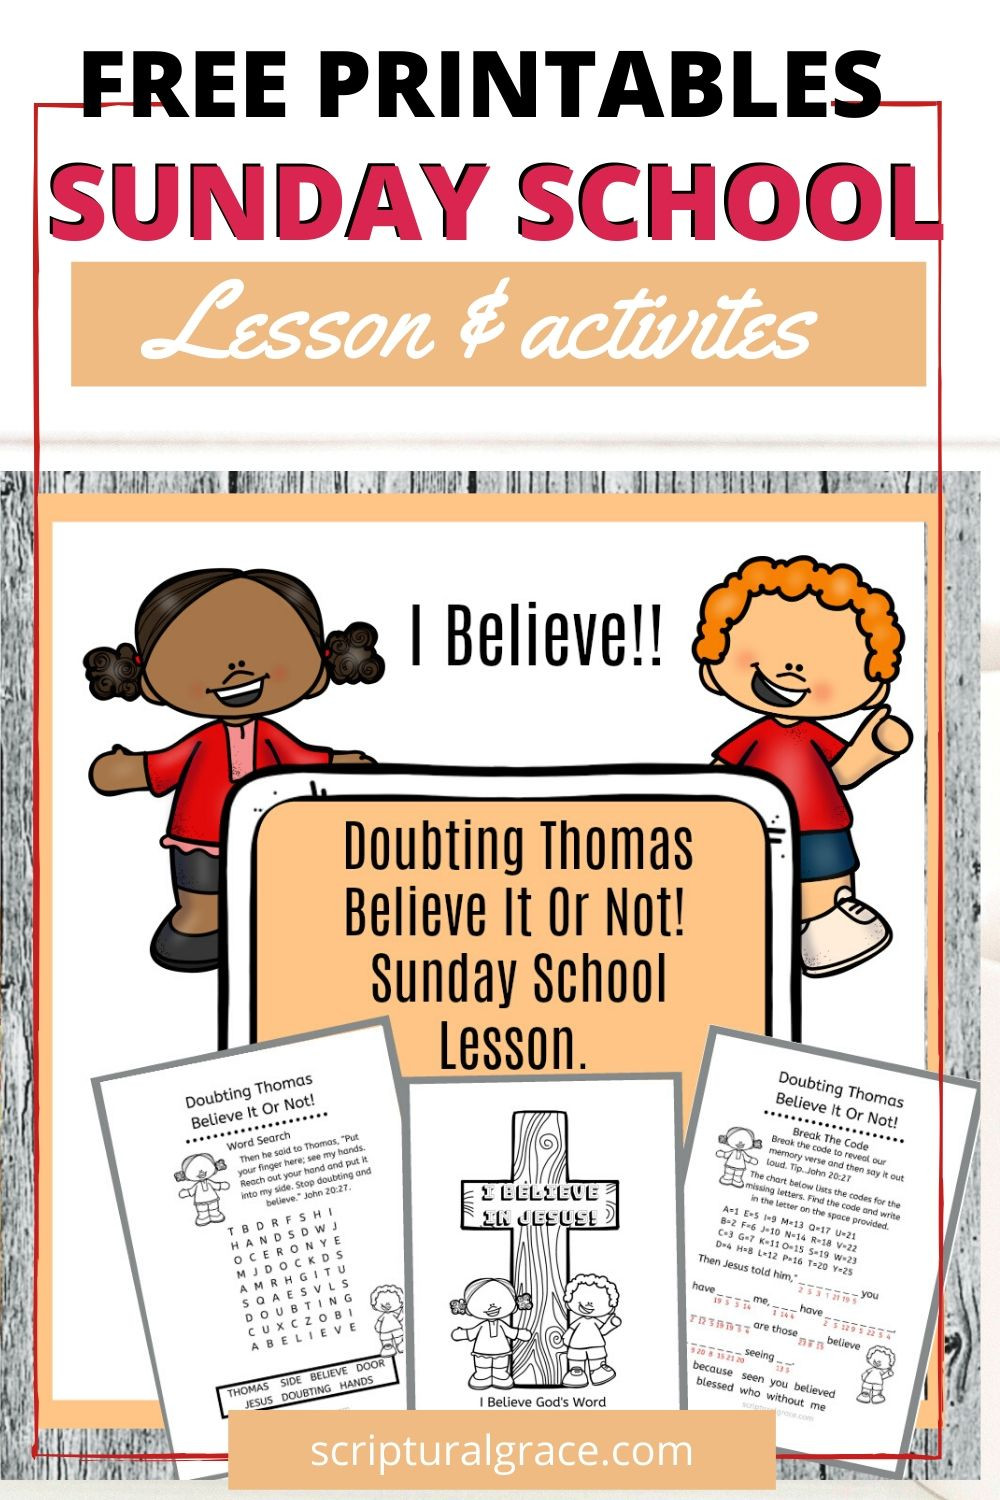 Free printables for Doubting Thomas kids lesson, word search, color-in page and break the code memory verse.